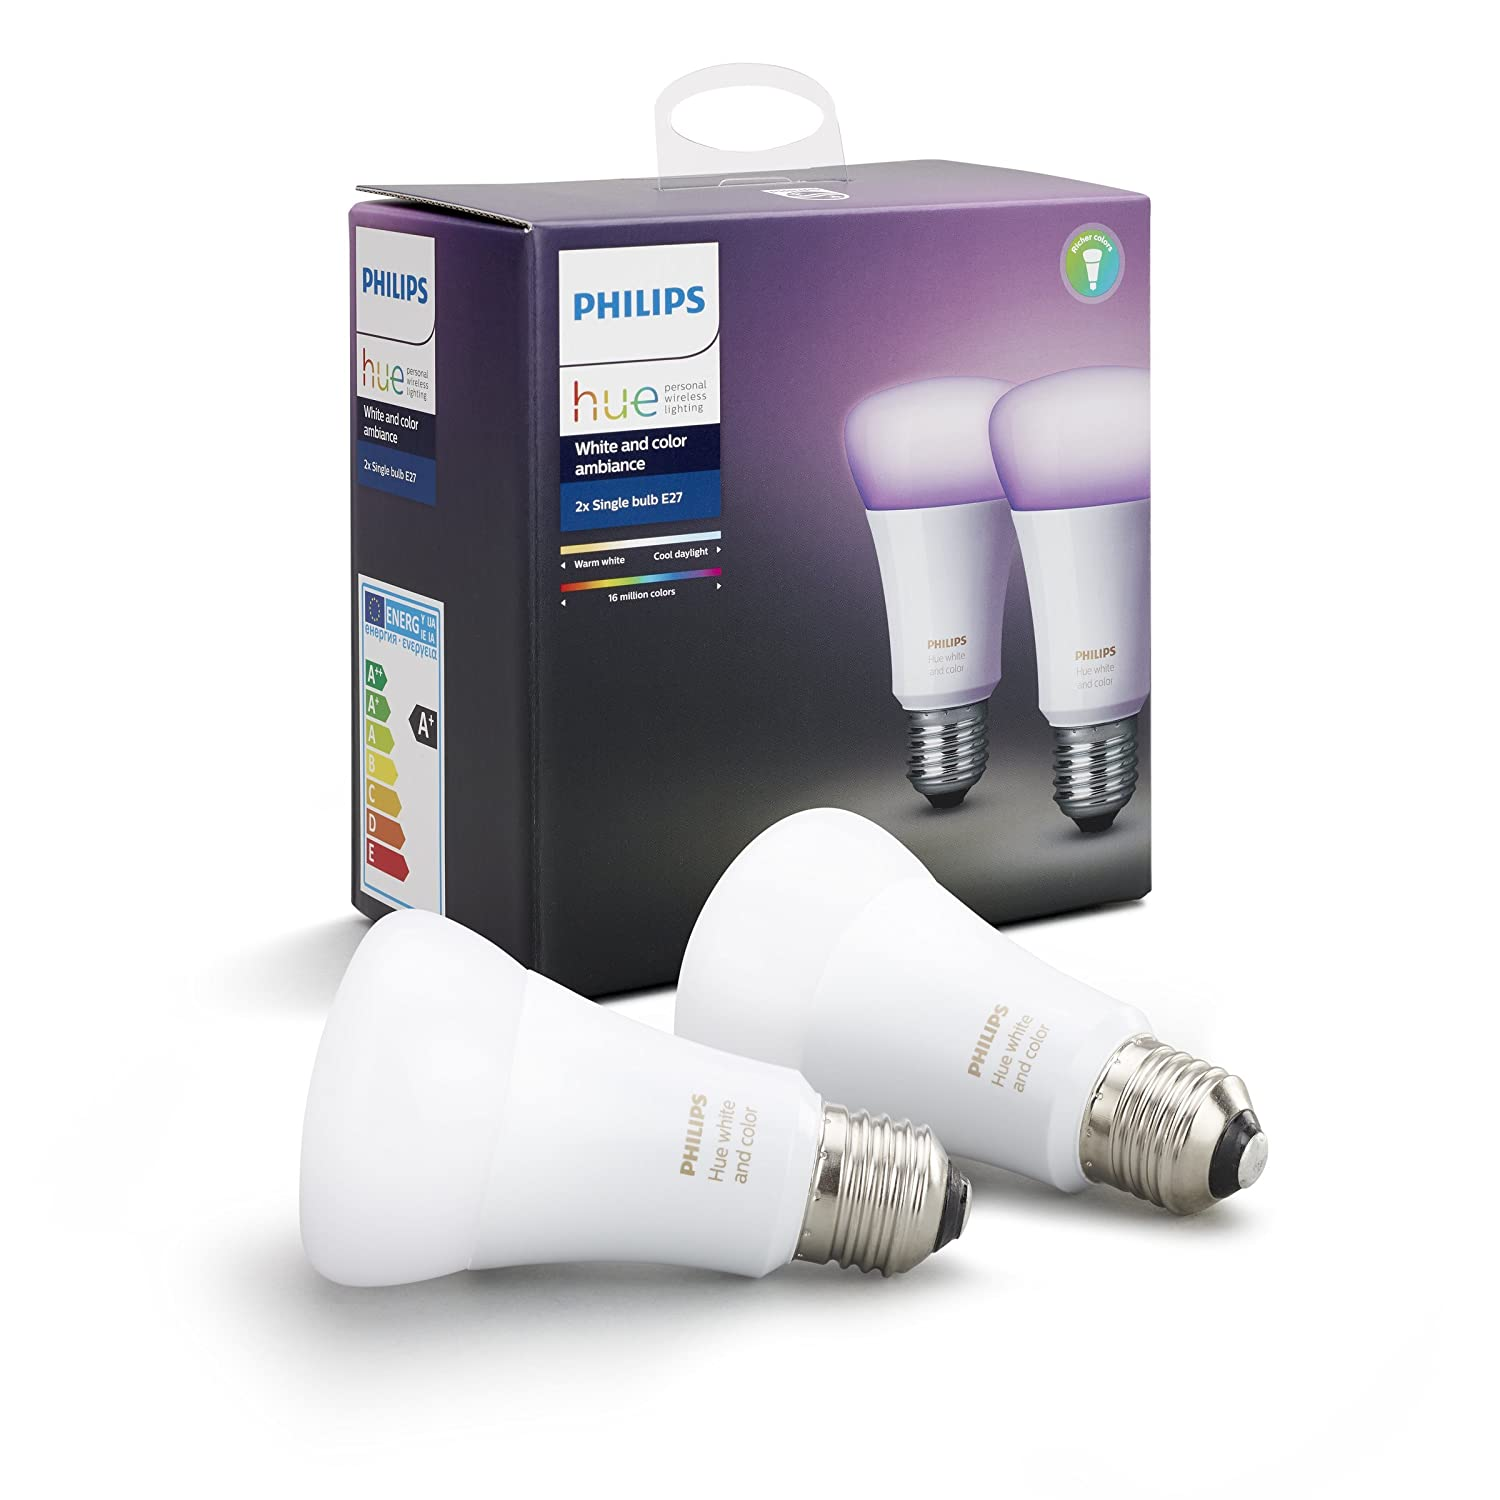 Philips Hue White And Color Ambiance Lampadina Led, E27, 9.5 W, 2 Pezzi by Philips